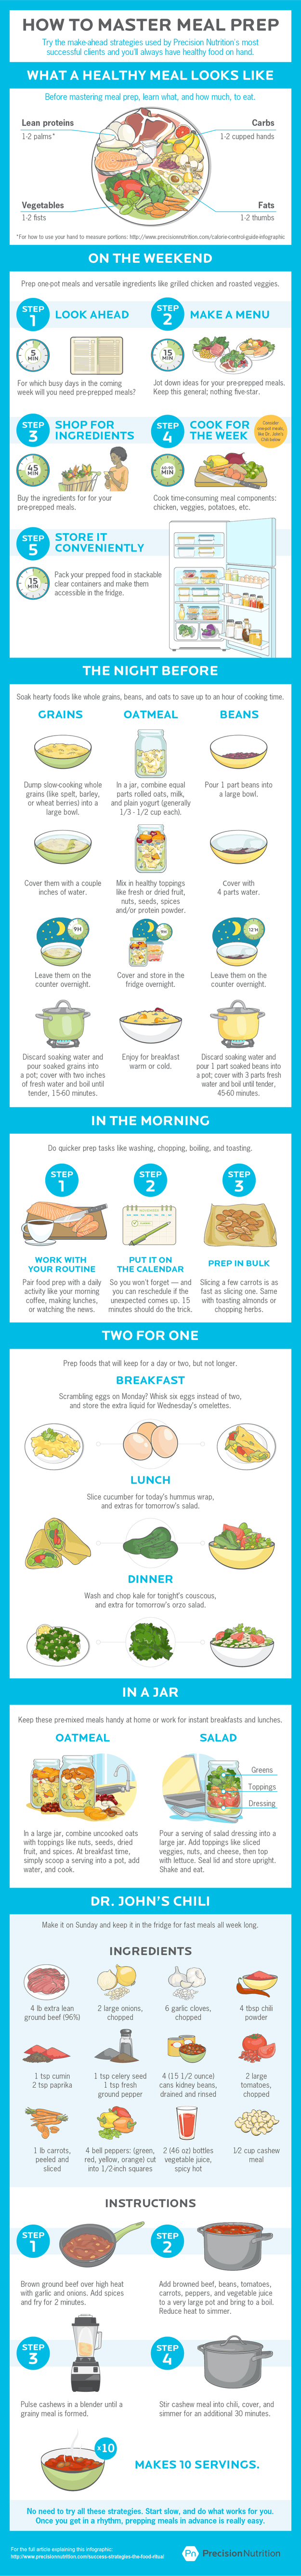 Create The Perfect Meal With This Simple Guide